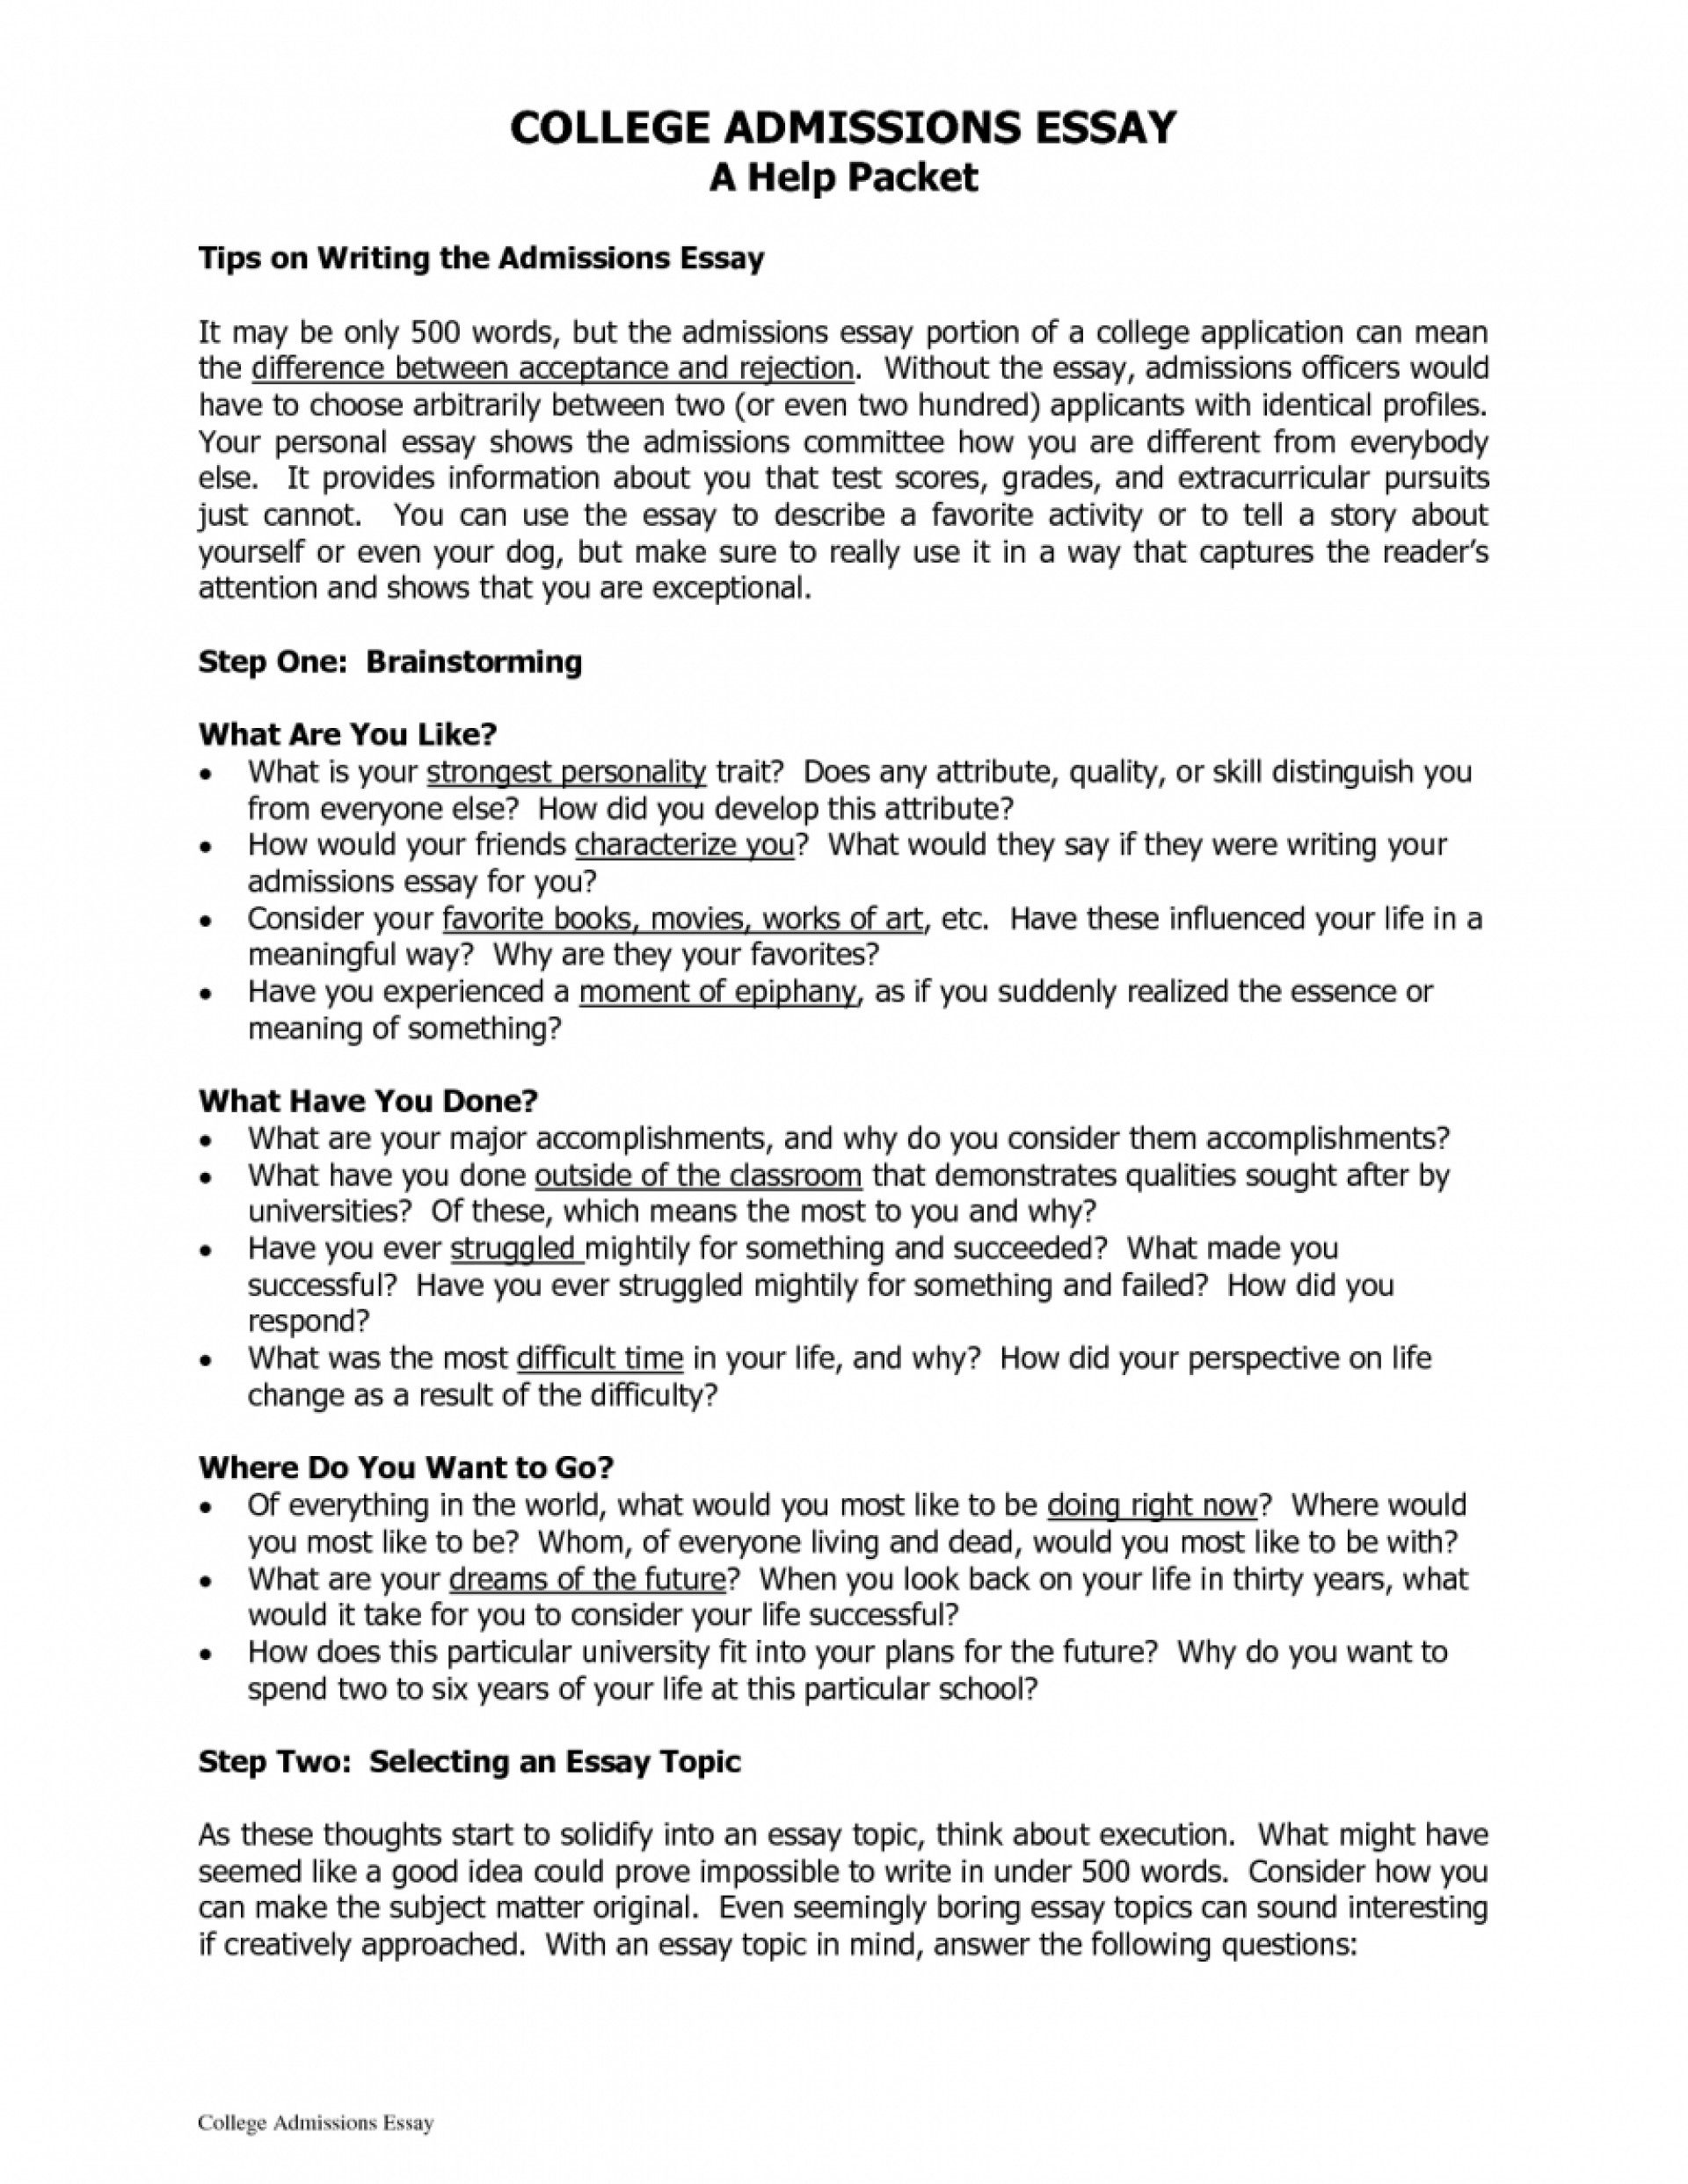 003 College Entry Essay Cover Letter Example Of Personal For Application Good Statement Applications Sa What Makes Best How To Write Examples Essays Amazing Admissions Tips 12 Admission That Worked 1920